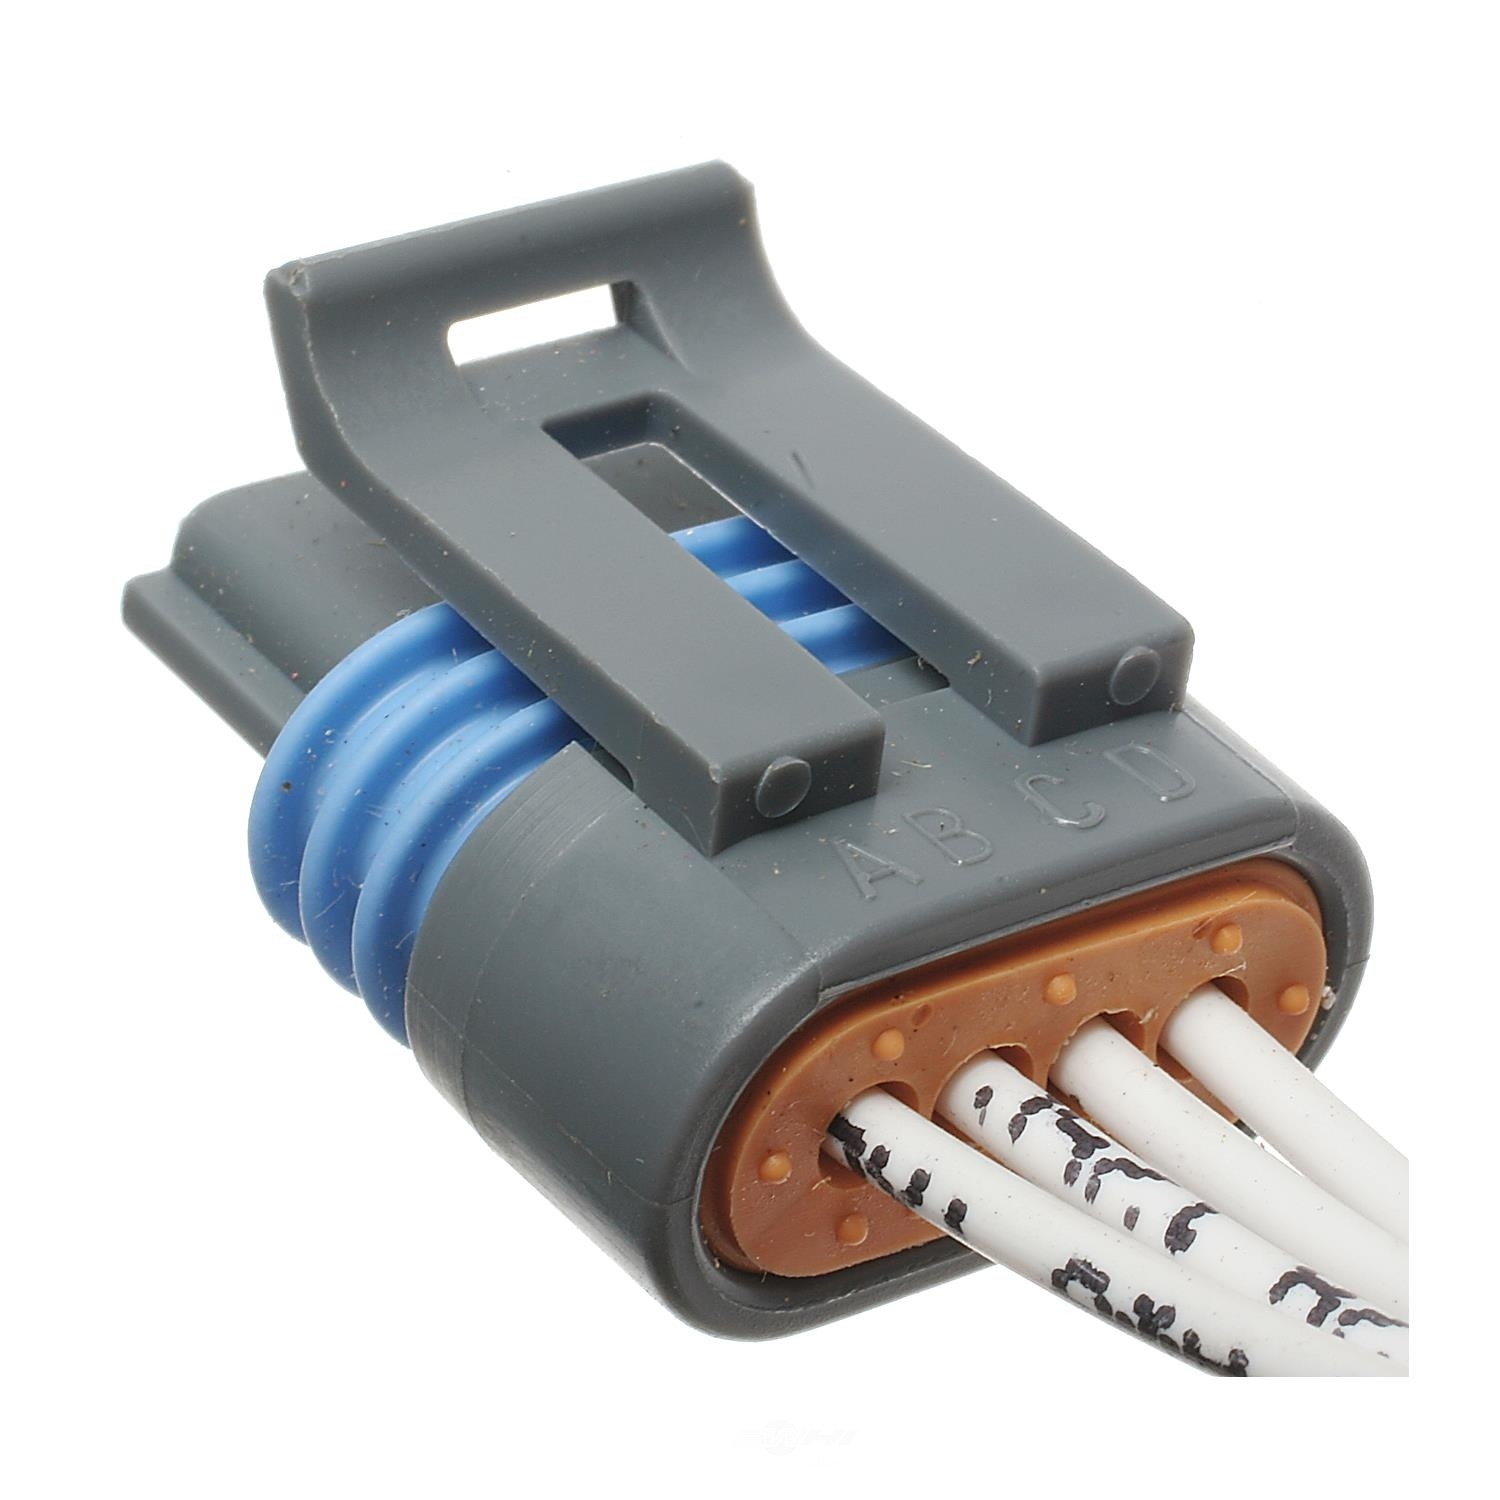 HANDY PACK - Multi Purpose Connector - HDY HP4485